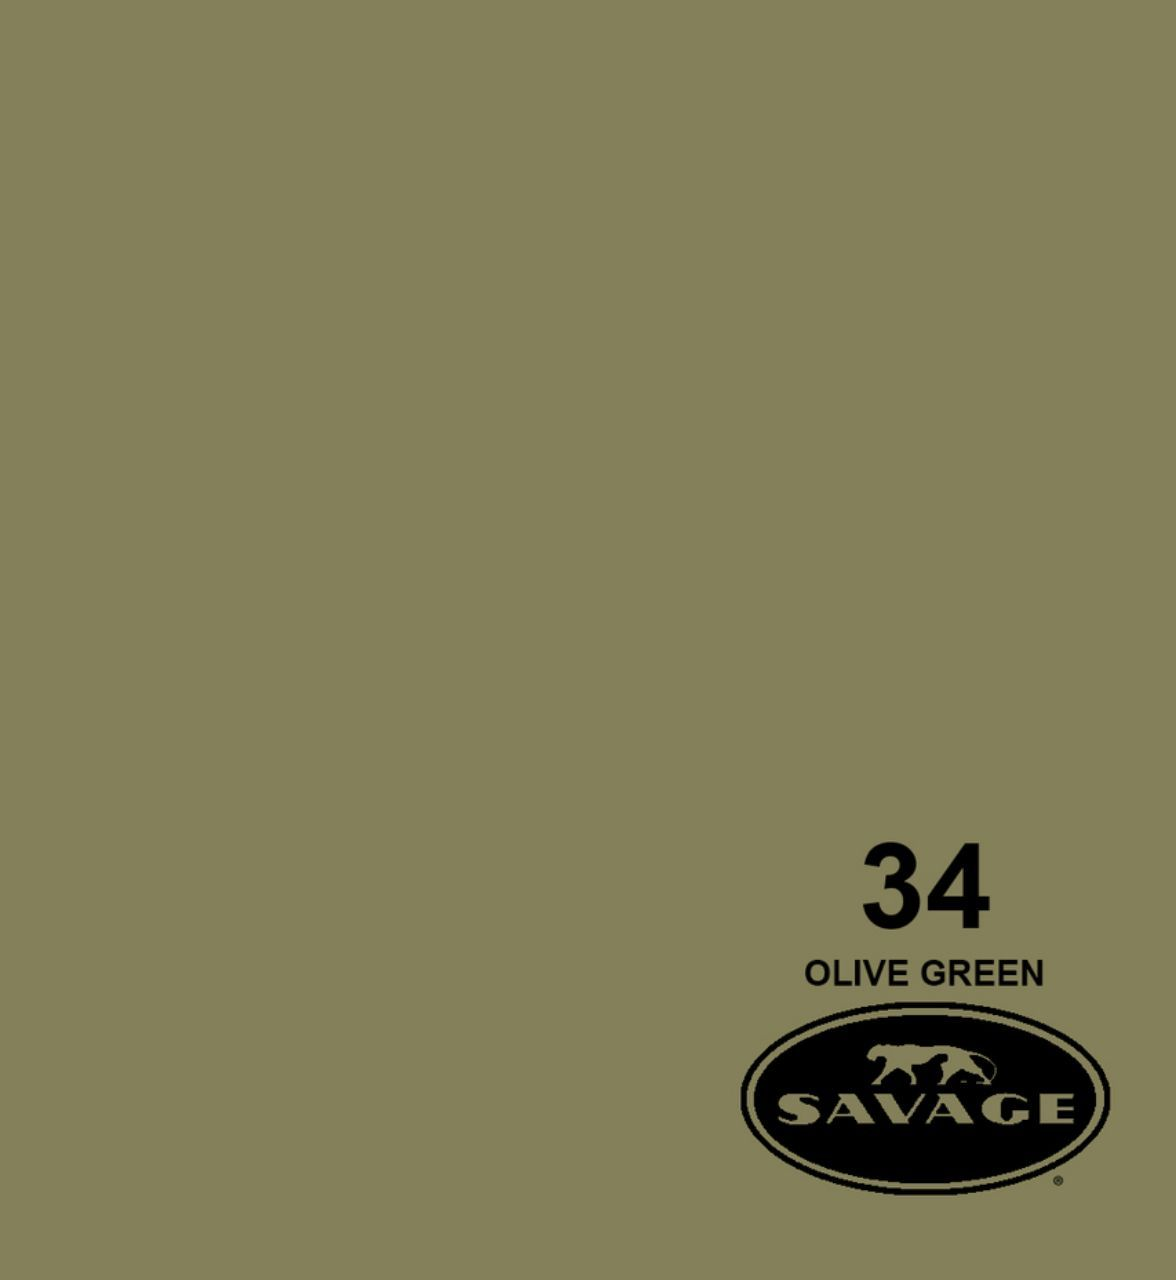 فون کاغذی Savage #34 olive green 11*3